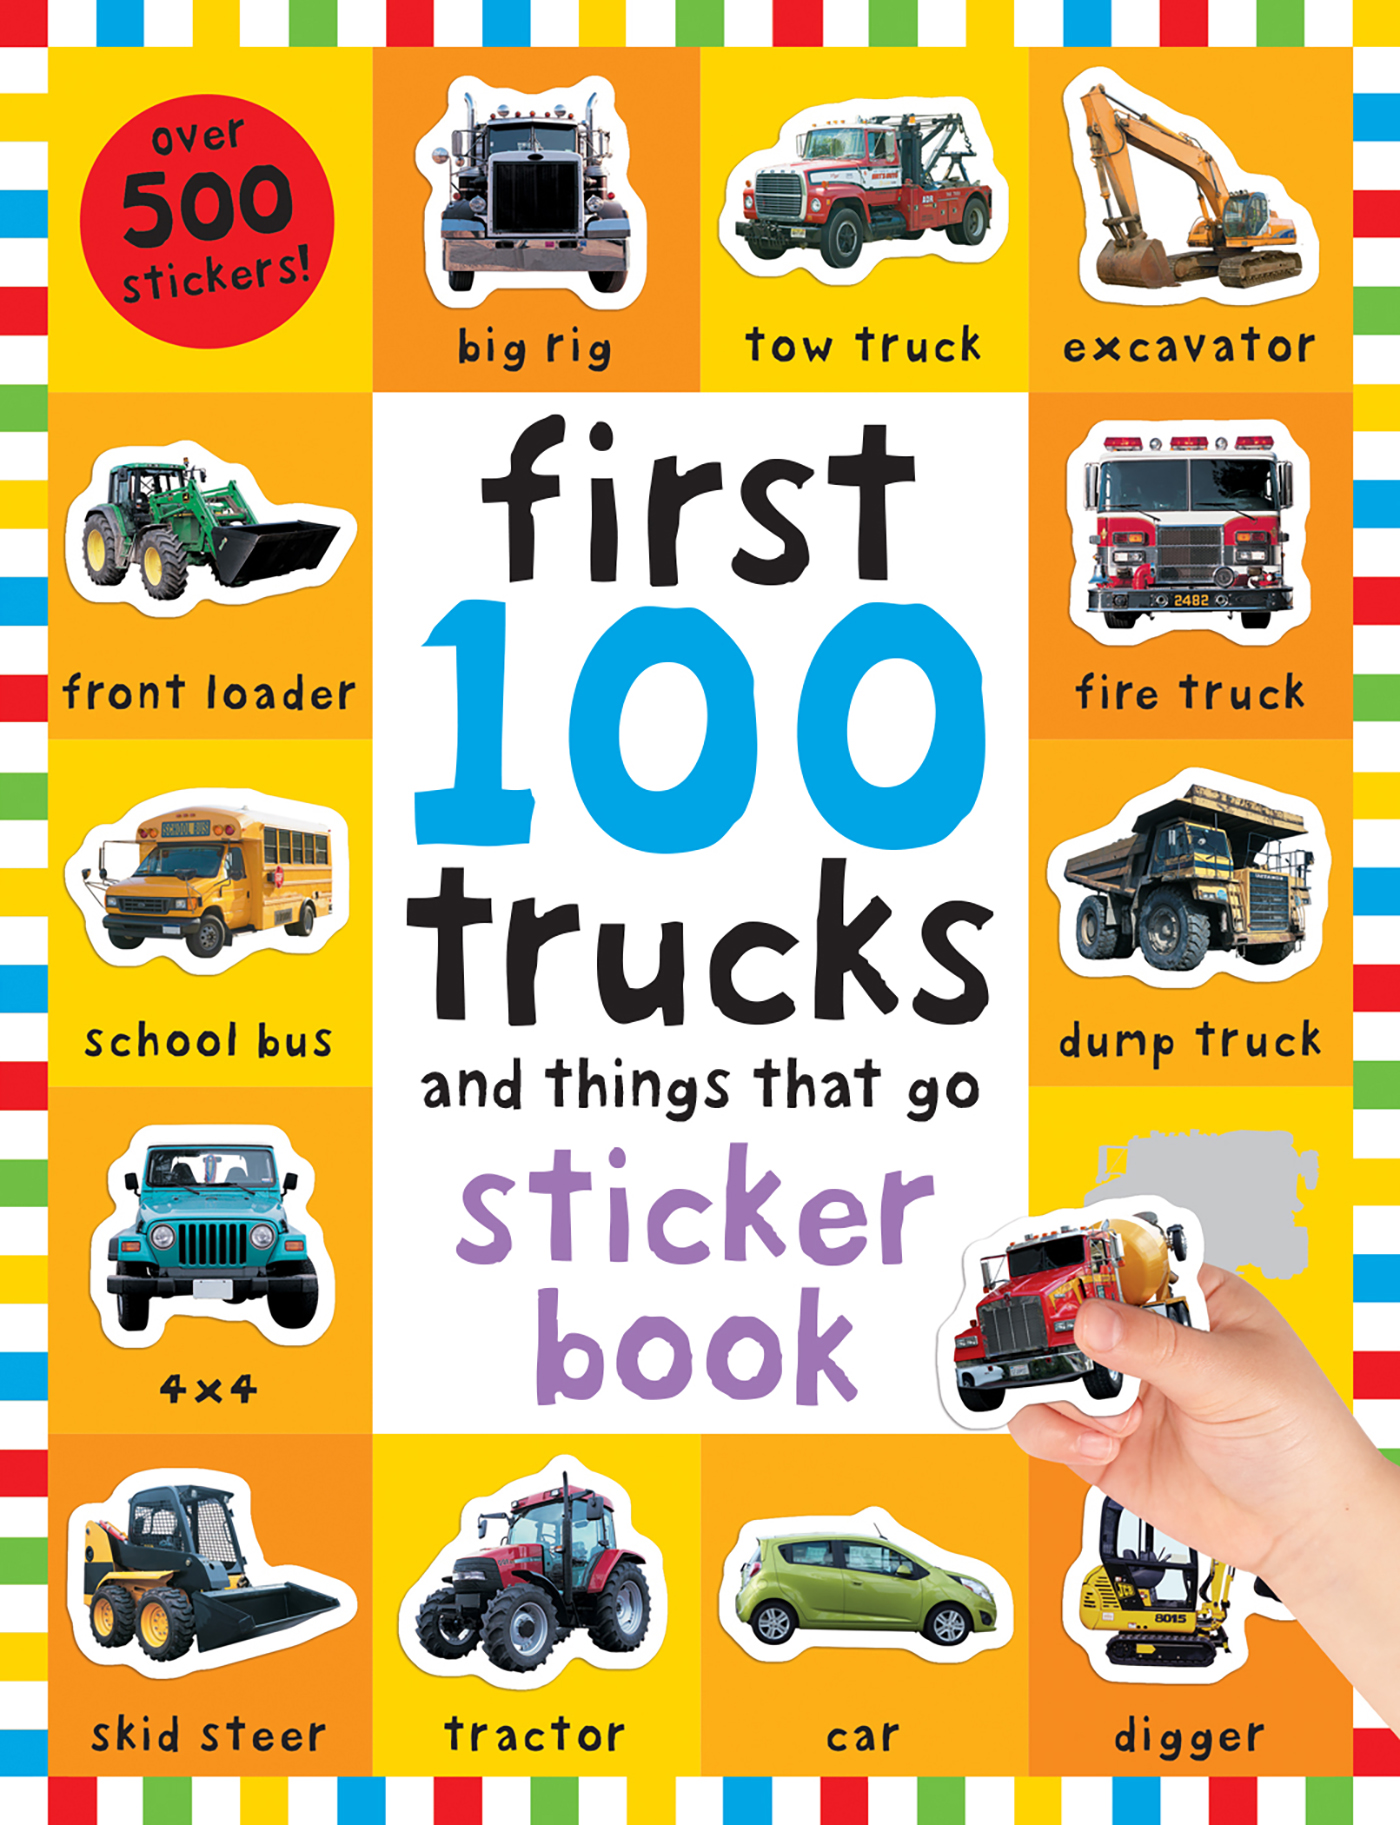 first-100-sticker-trucks